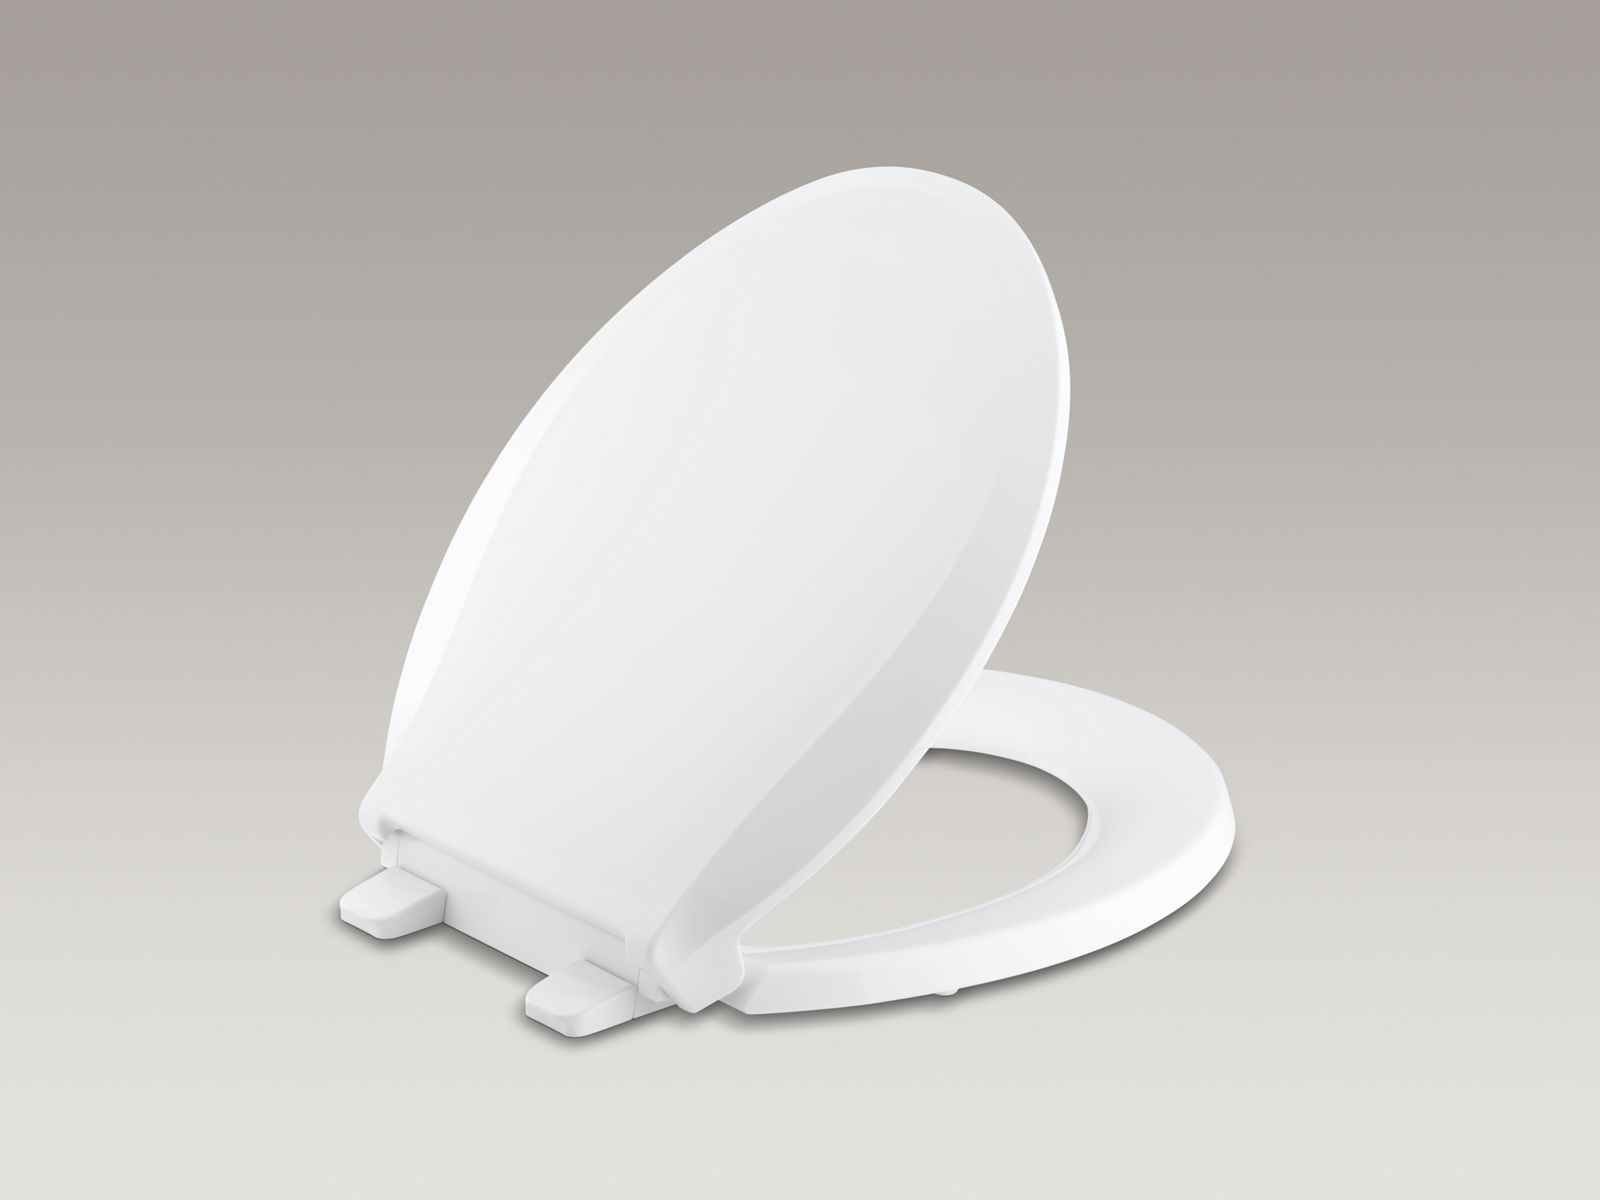 Grip-Tight Cachet® Q3 round toilet seat